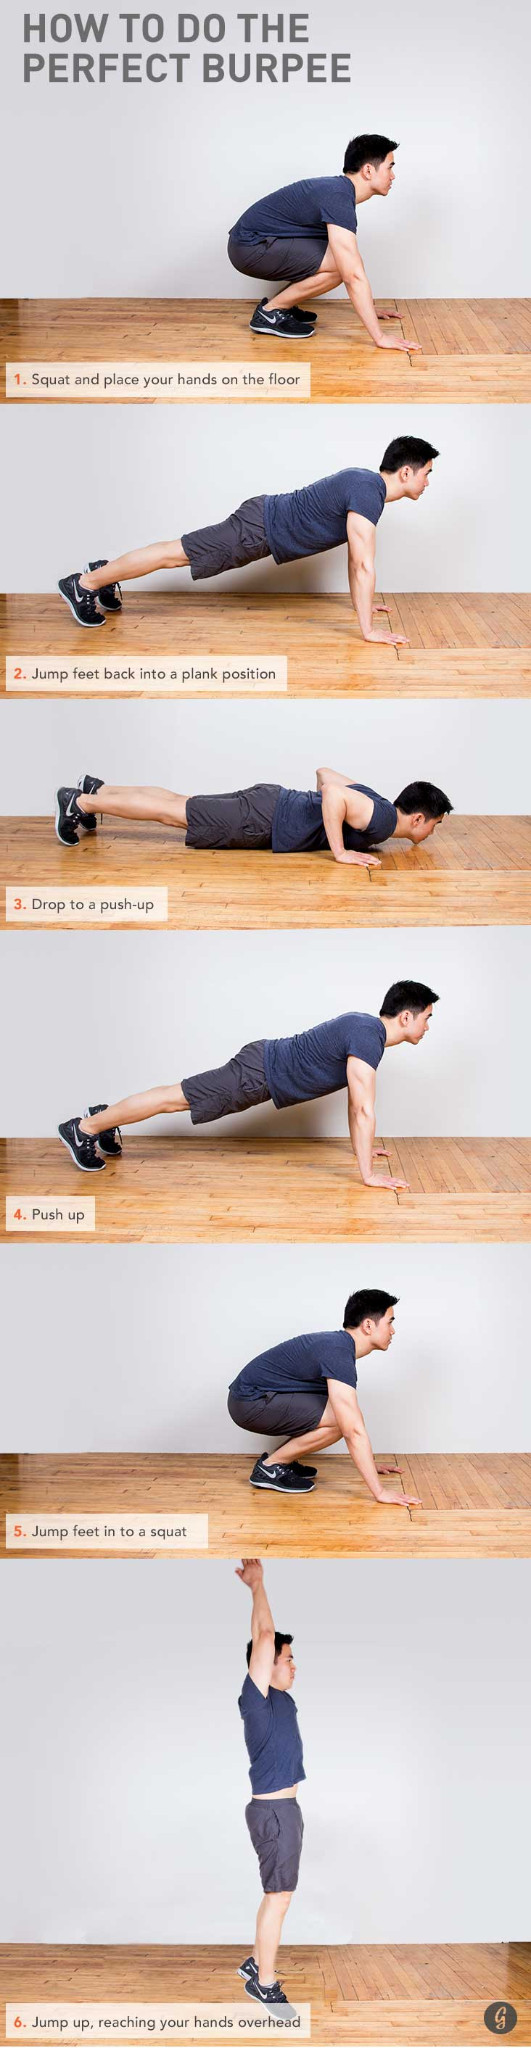 huong dan tap Burpees dung cach